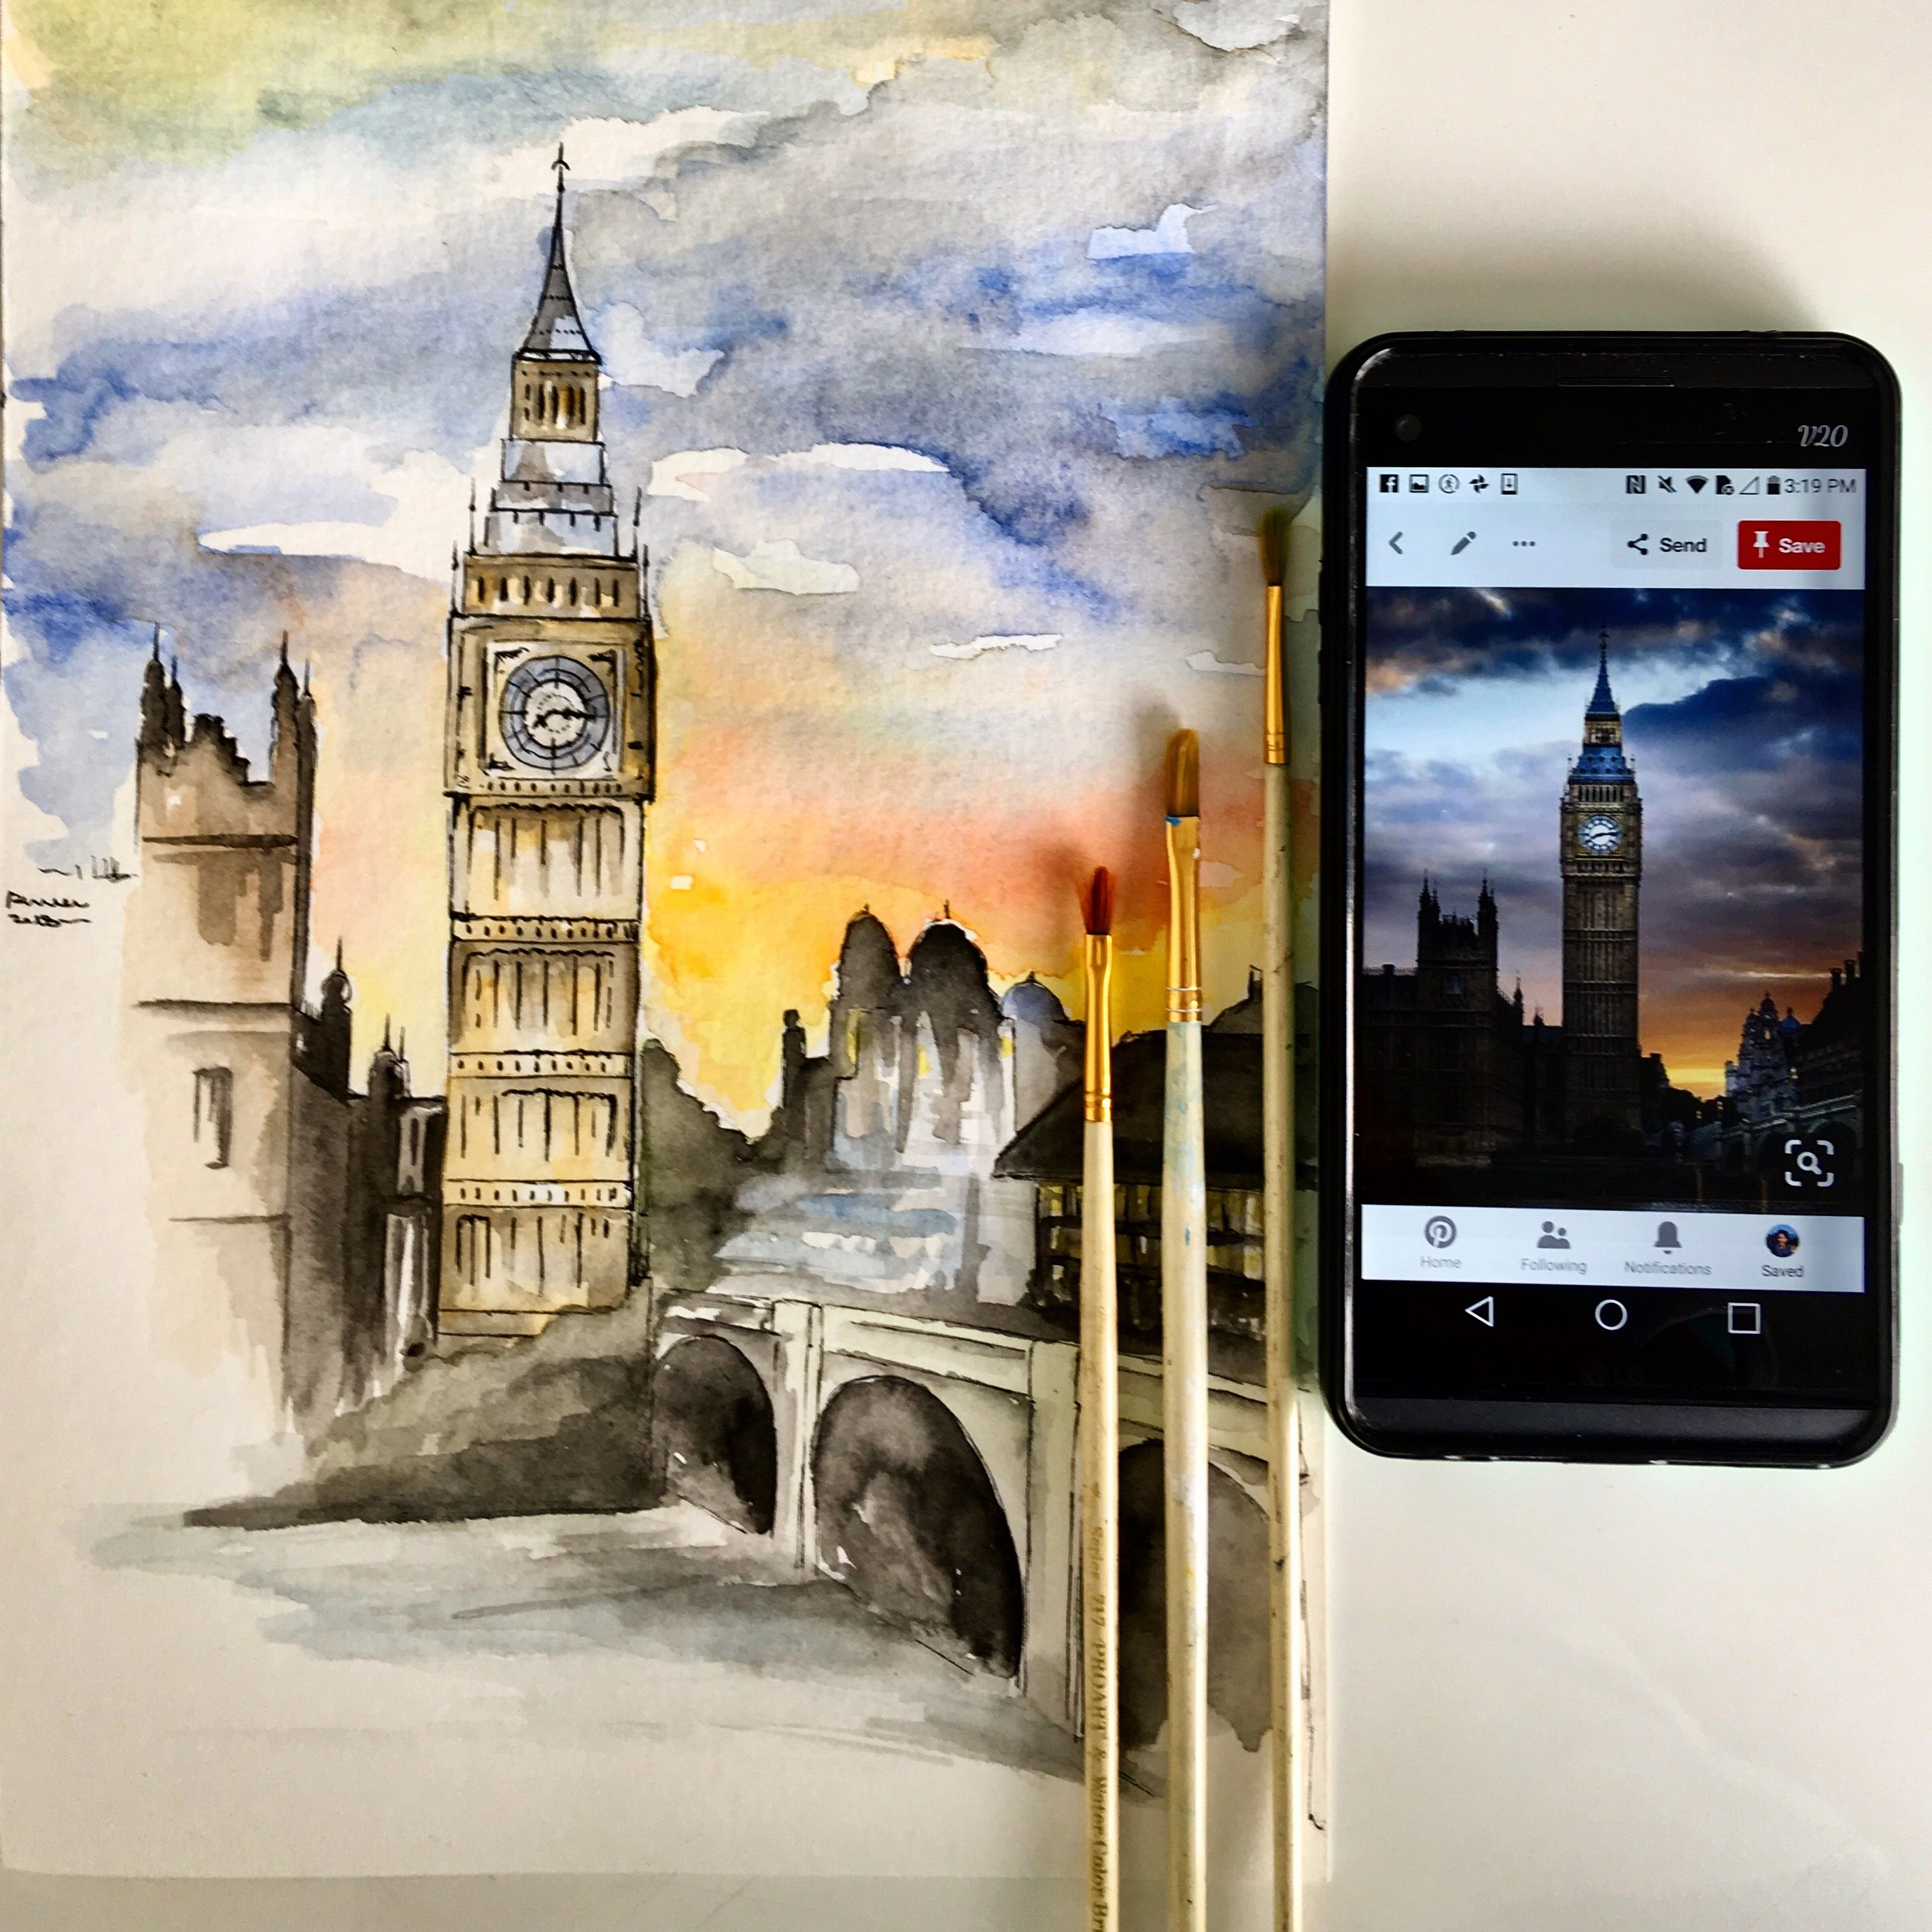 Watercolour Painting Of London With Images Watercolor